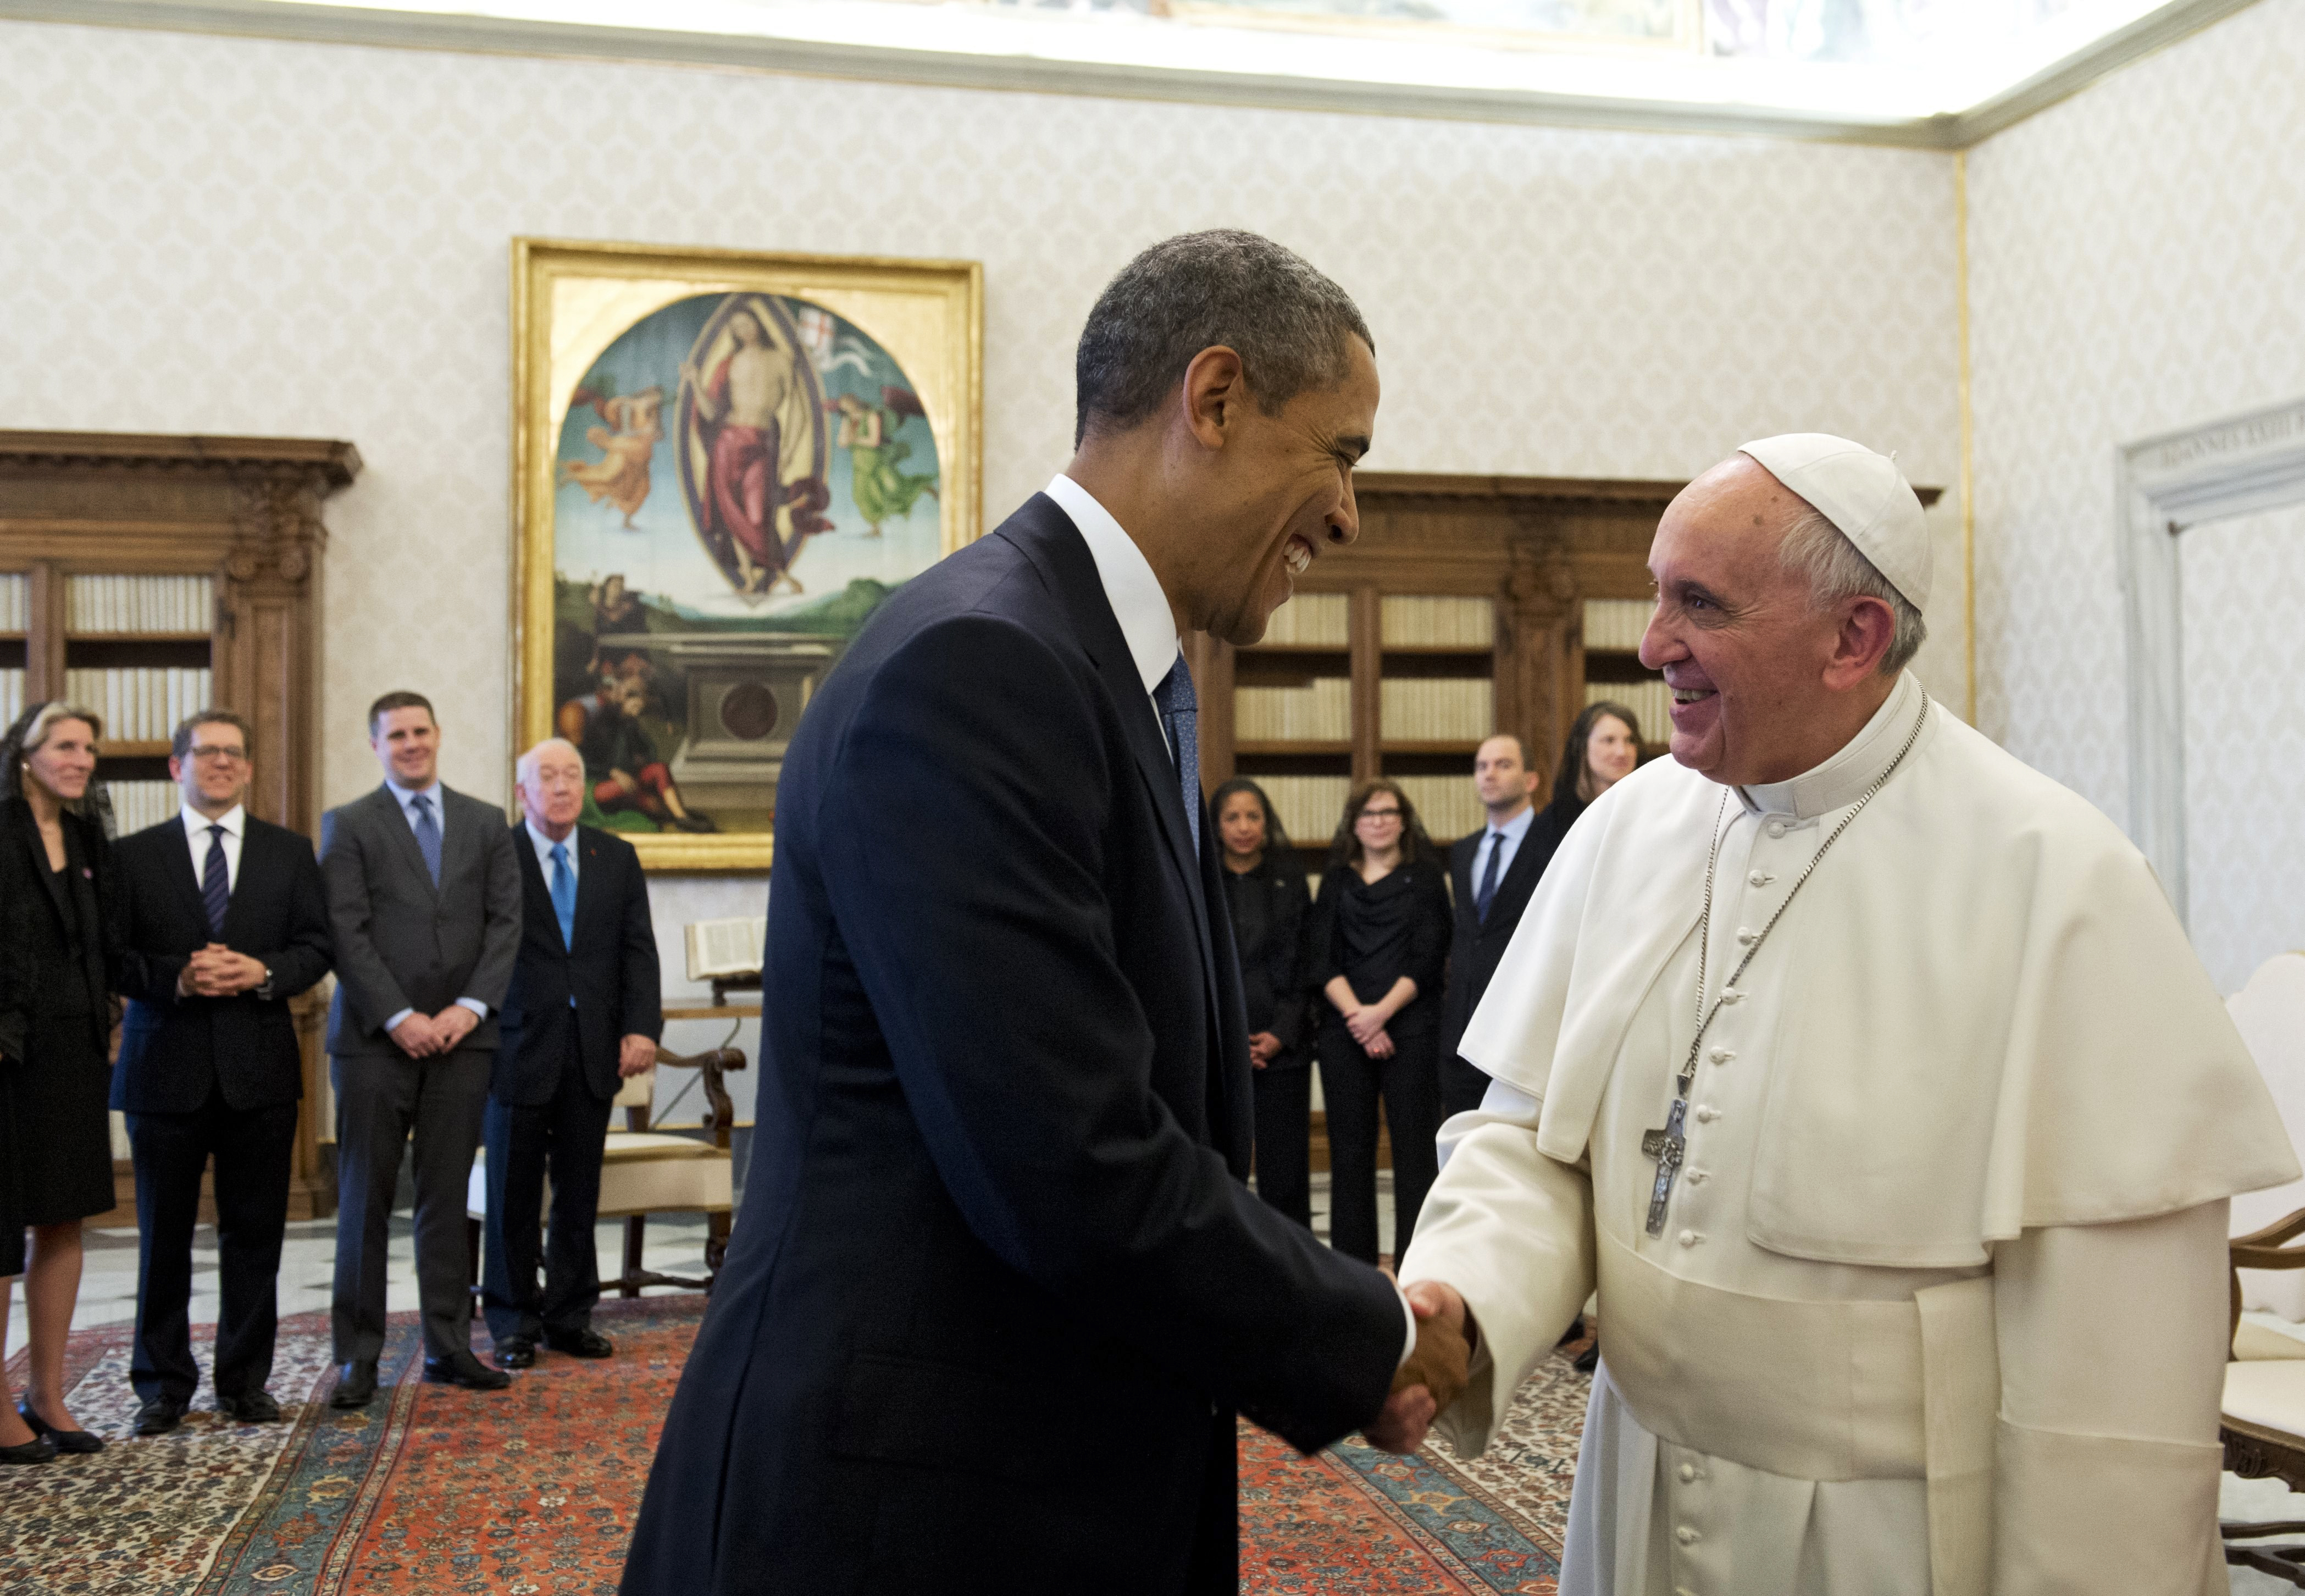 Pope Francis and President Barack Obama shake hands during a private audience on March 27, 2014 at the Vatican.